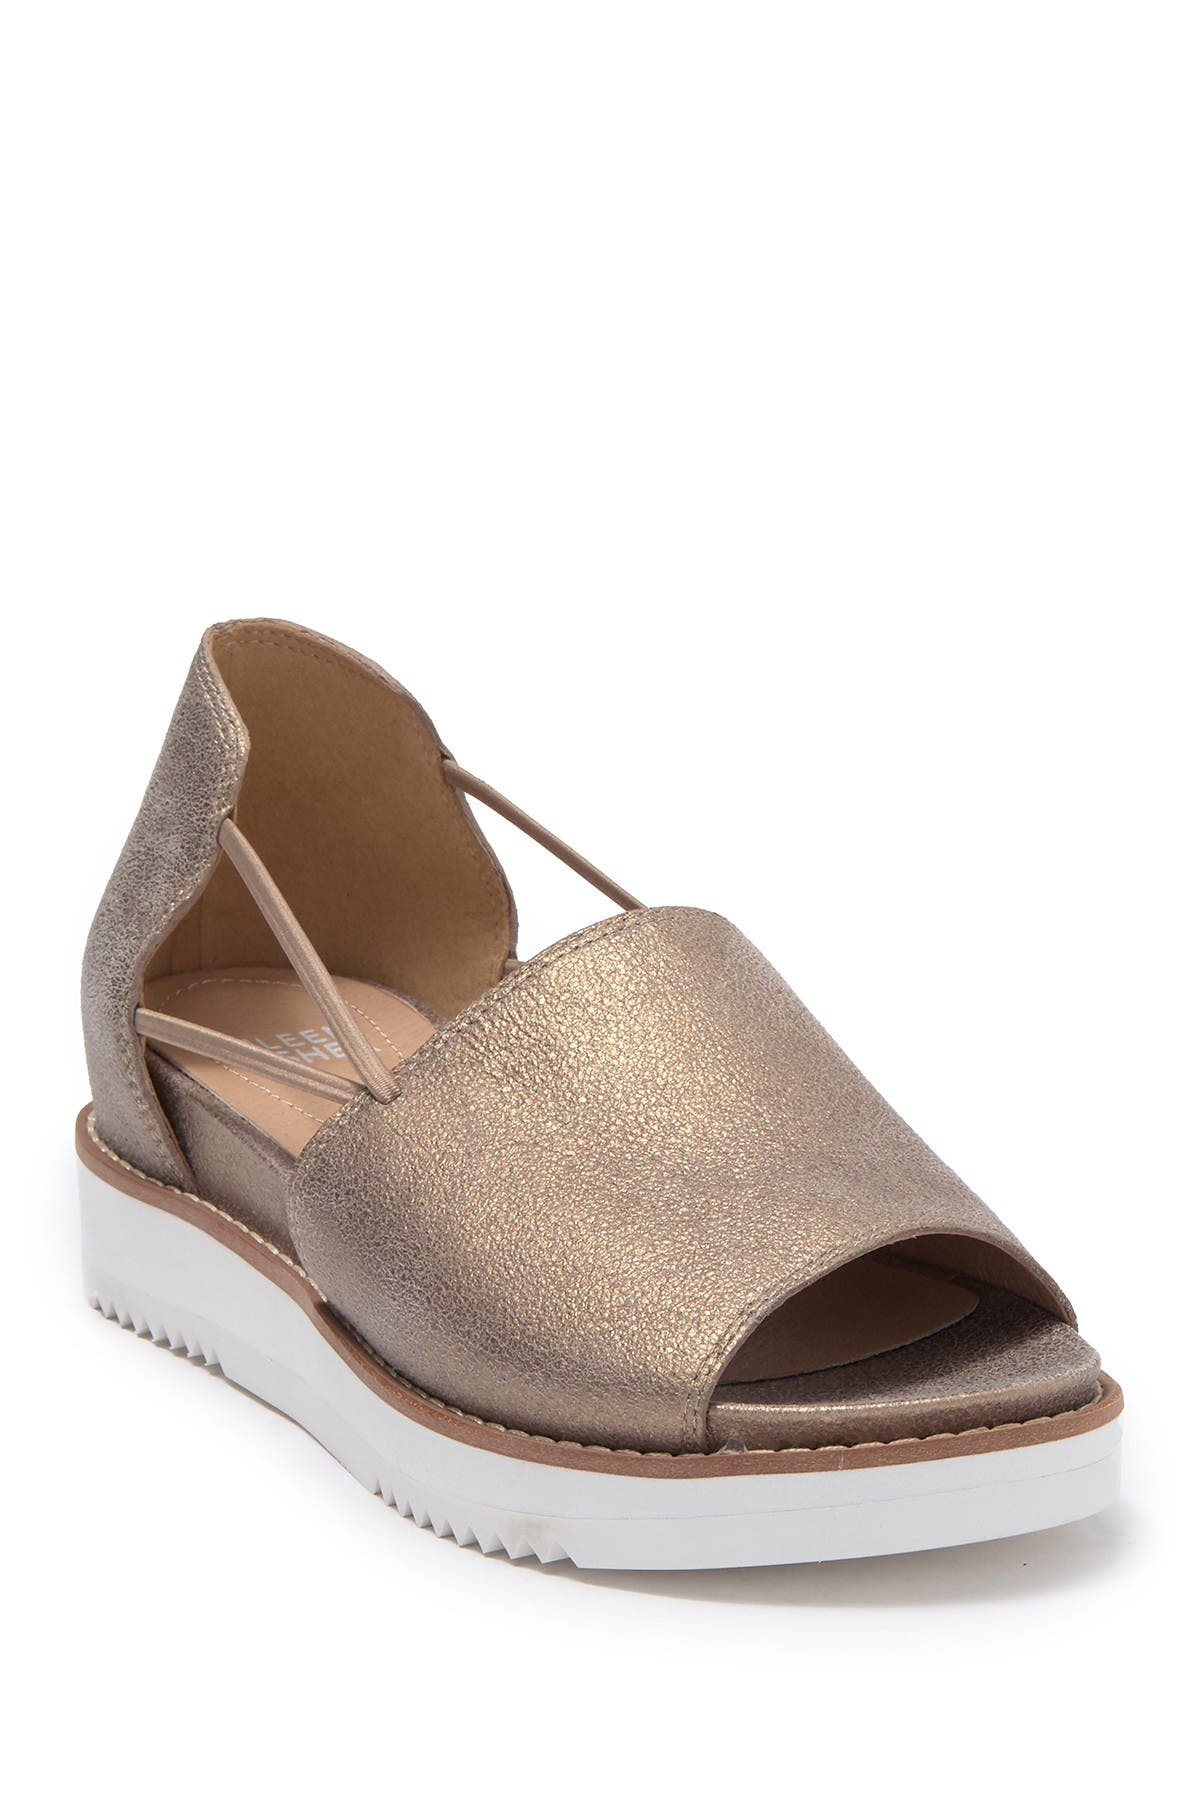 Image of Eileen Fisher Ken Metallic Leather Sandal